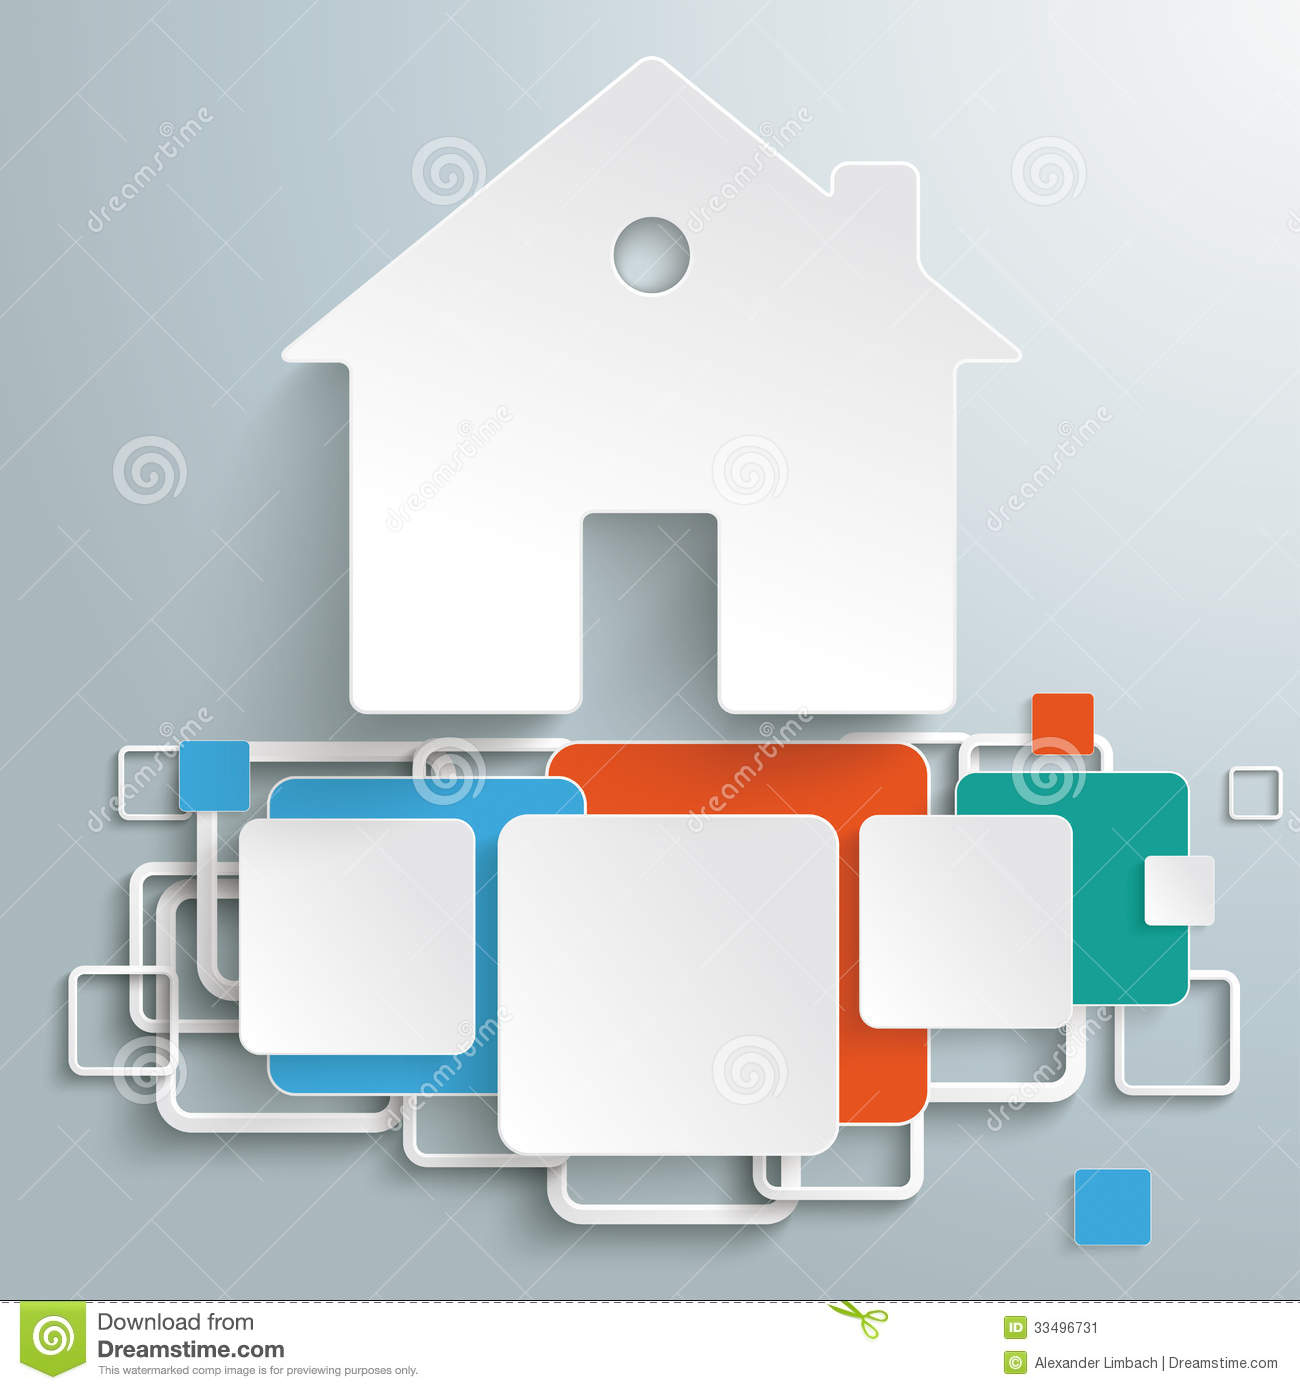 Infographic design on the grey background eps 10 vector file - House Foundation Colored Squares Infographic Piad Stock